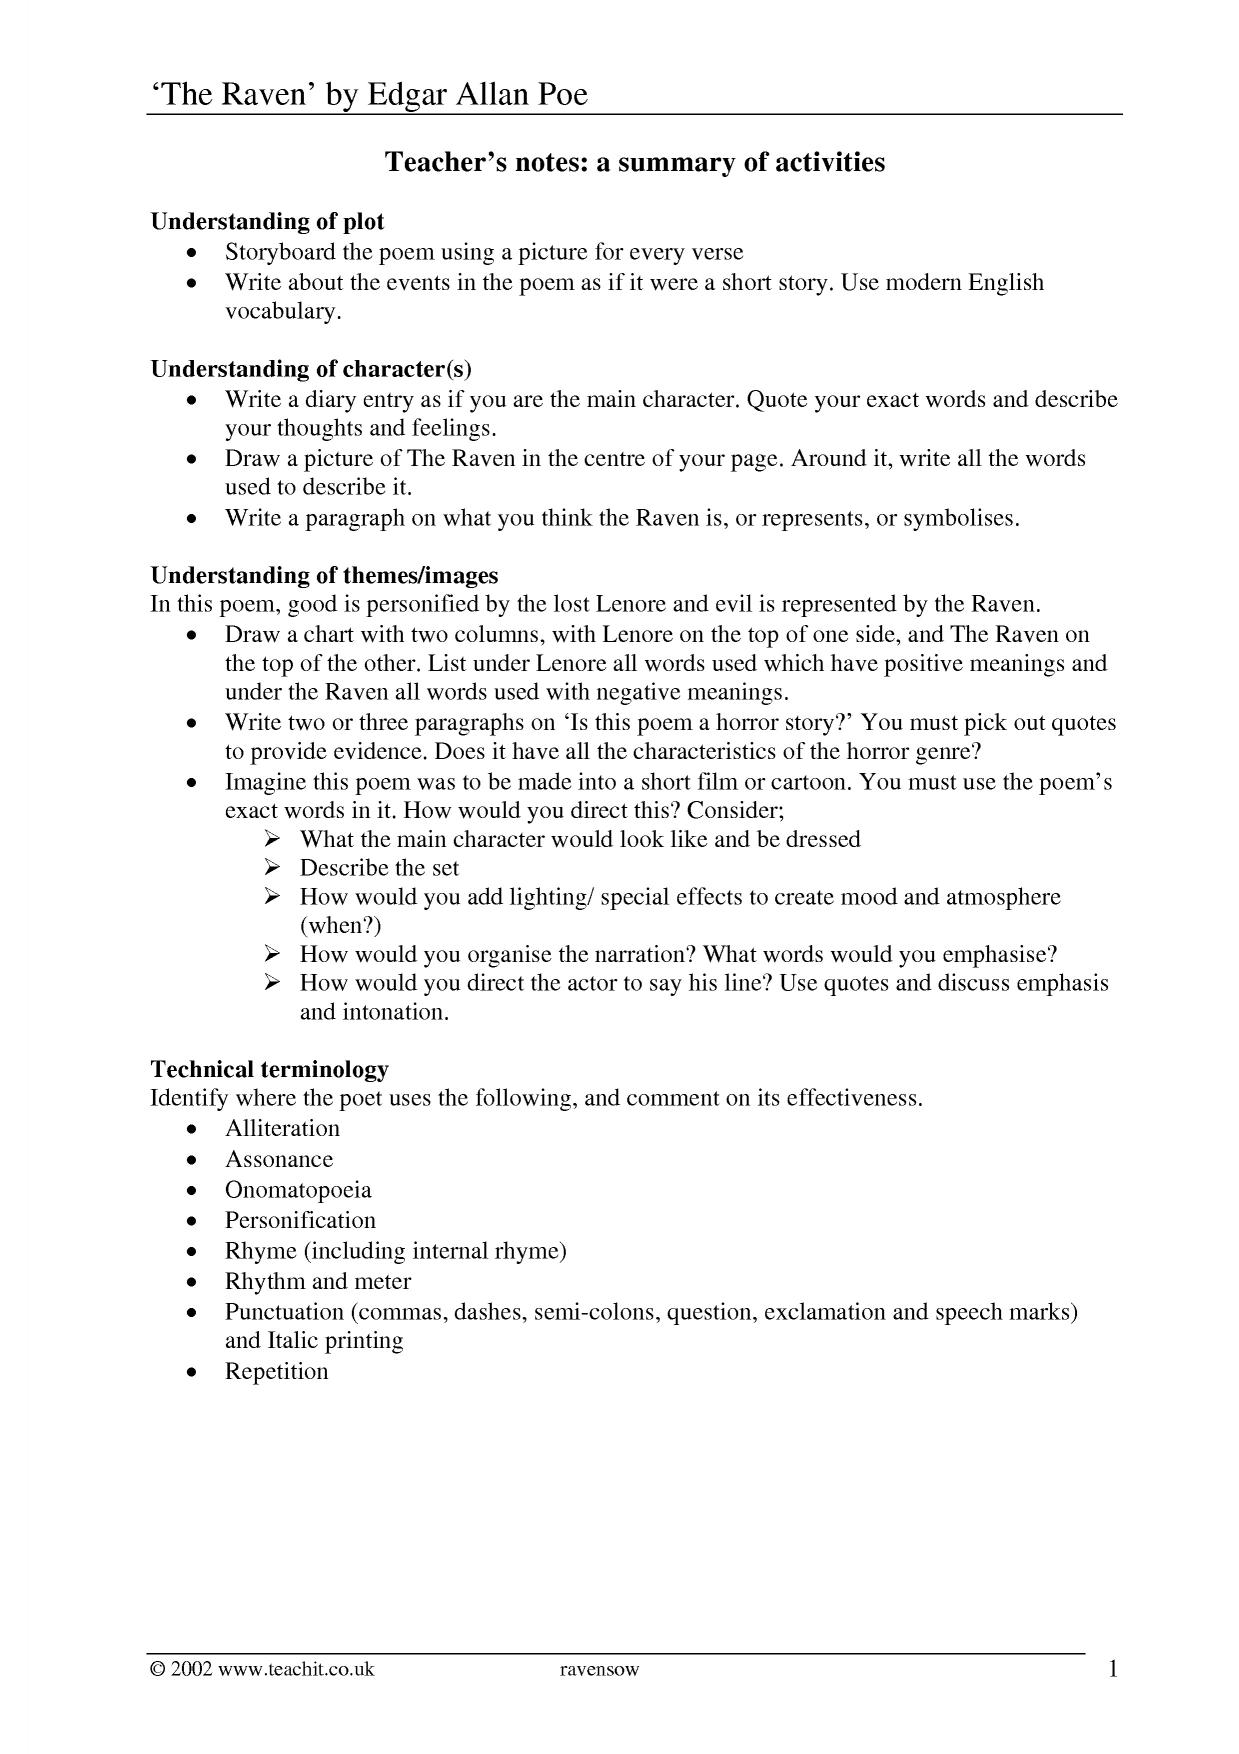 expository essay on spies Keith spies michael frayn essay how to write a history essay thesis research paper on aviation management jacob write how to essay expository a december 13.